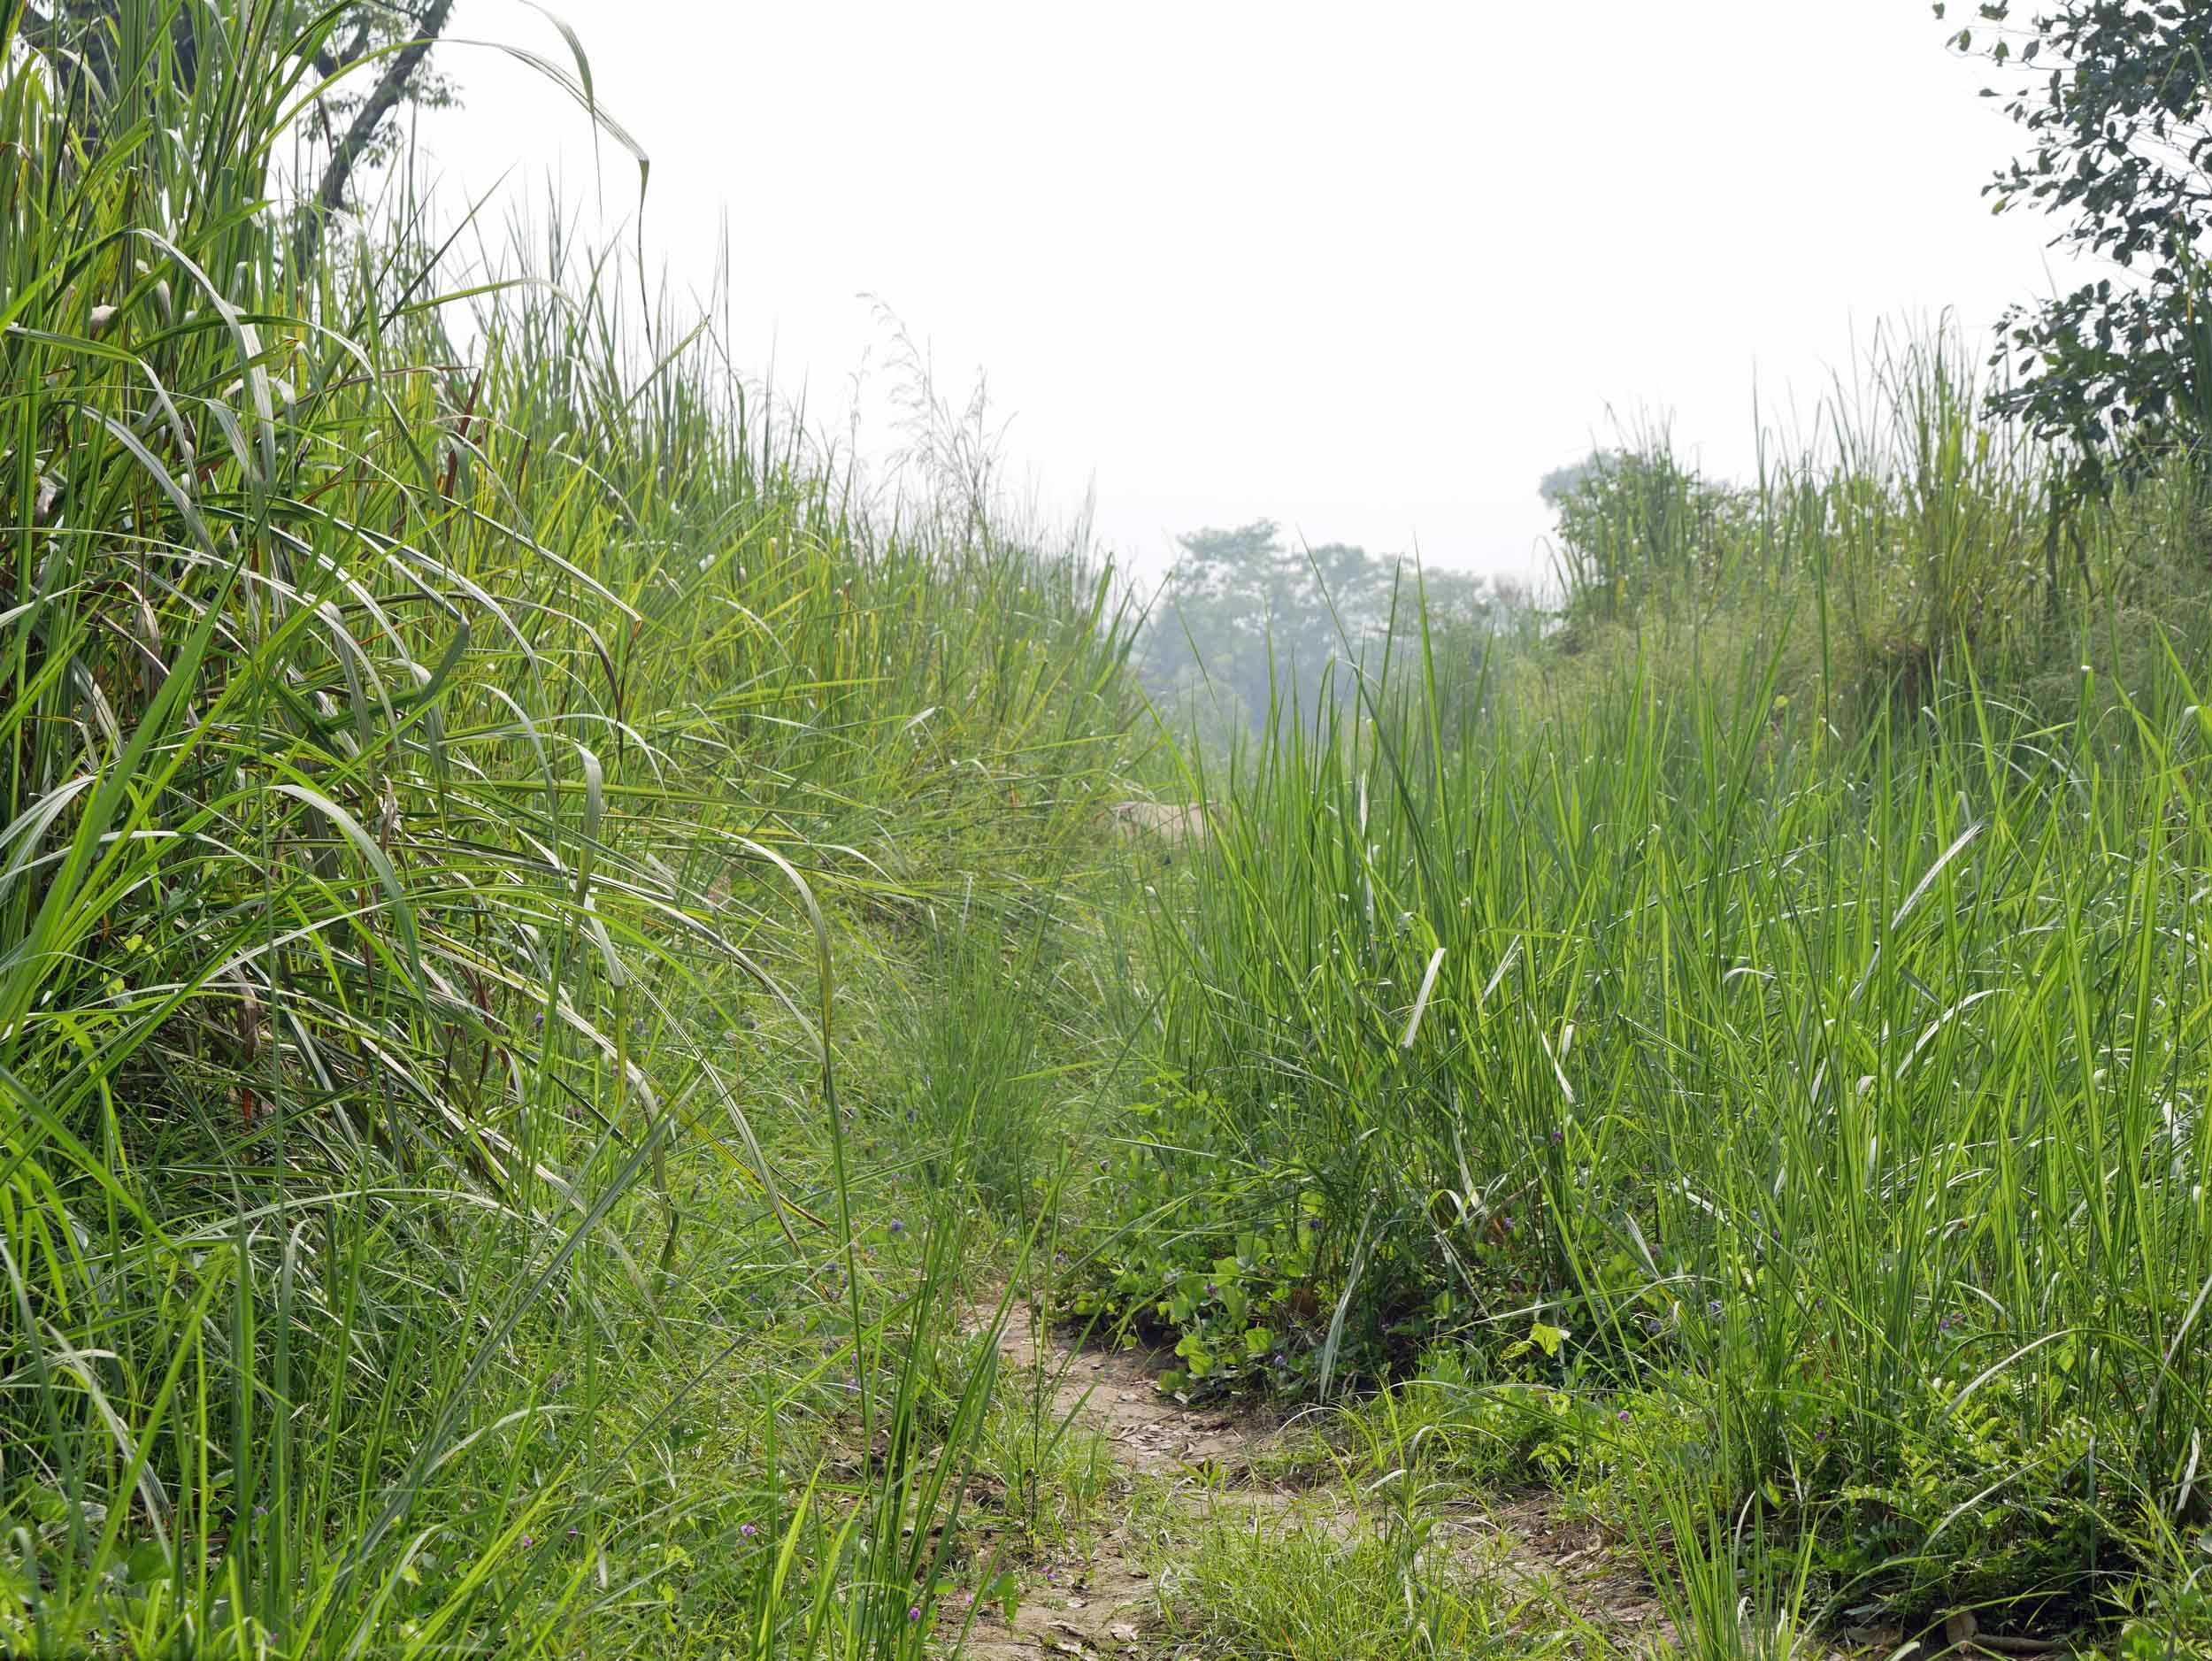 The majority of our walking tour was spent wading through exceptionally tall grasses – can you spot the hide of a rhino in the central background?